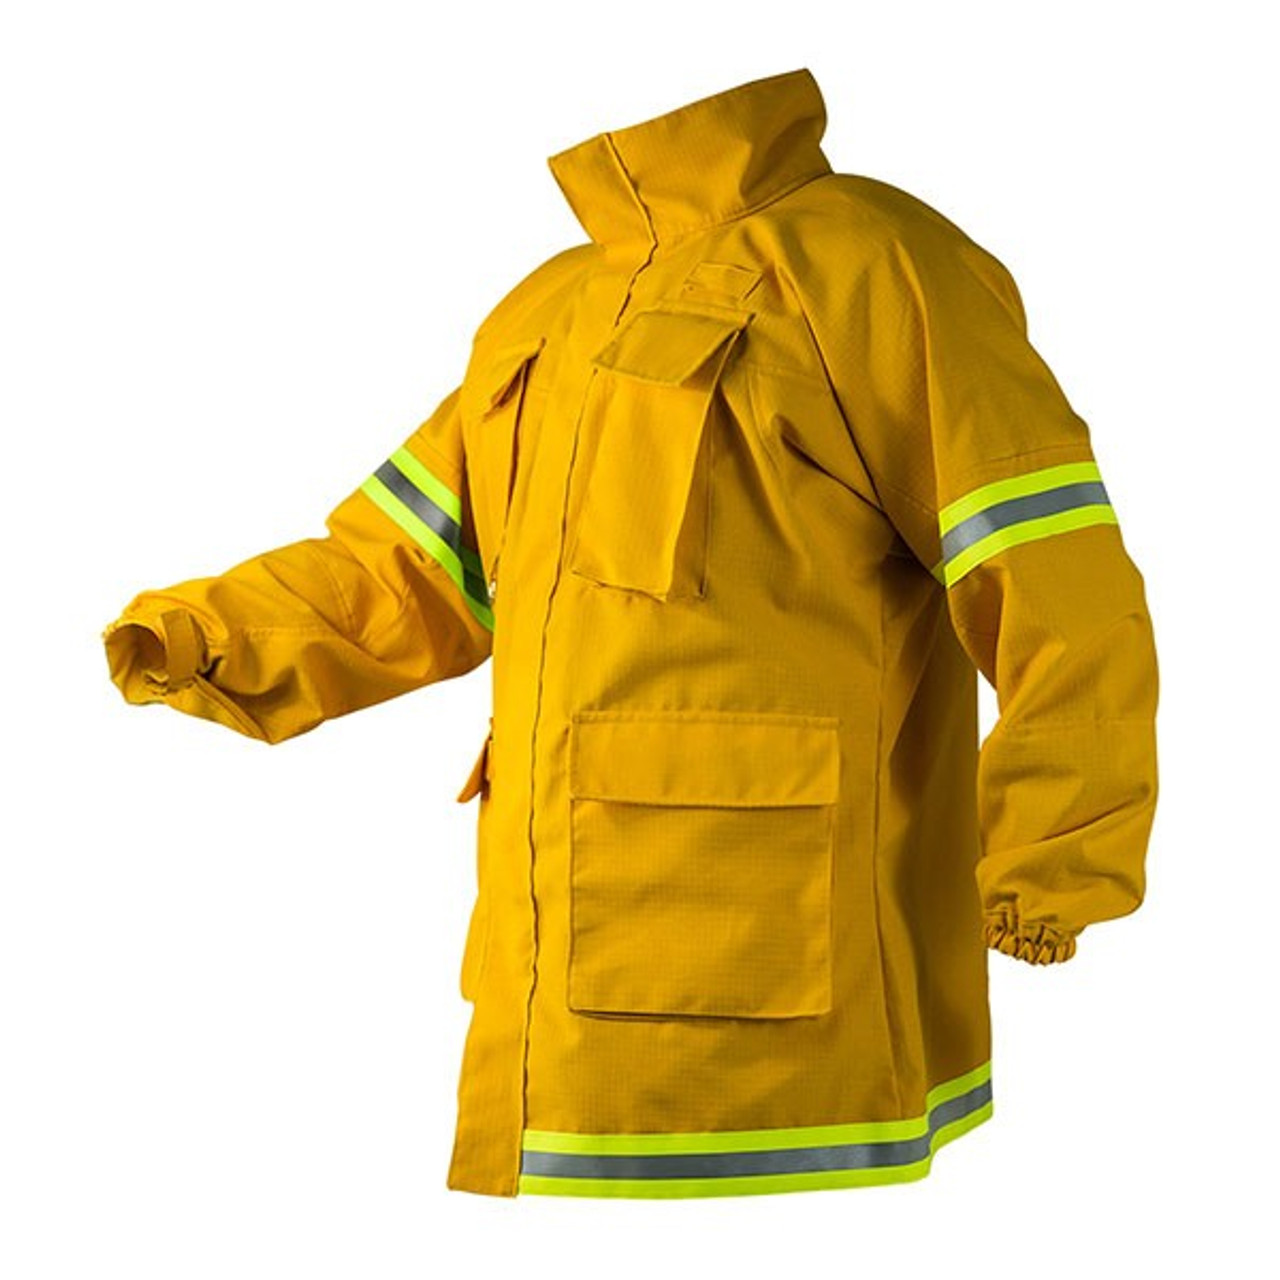 Smokechaser (Deluxe) Wildland Coat